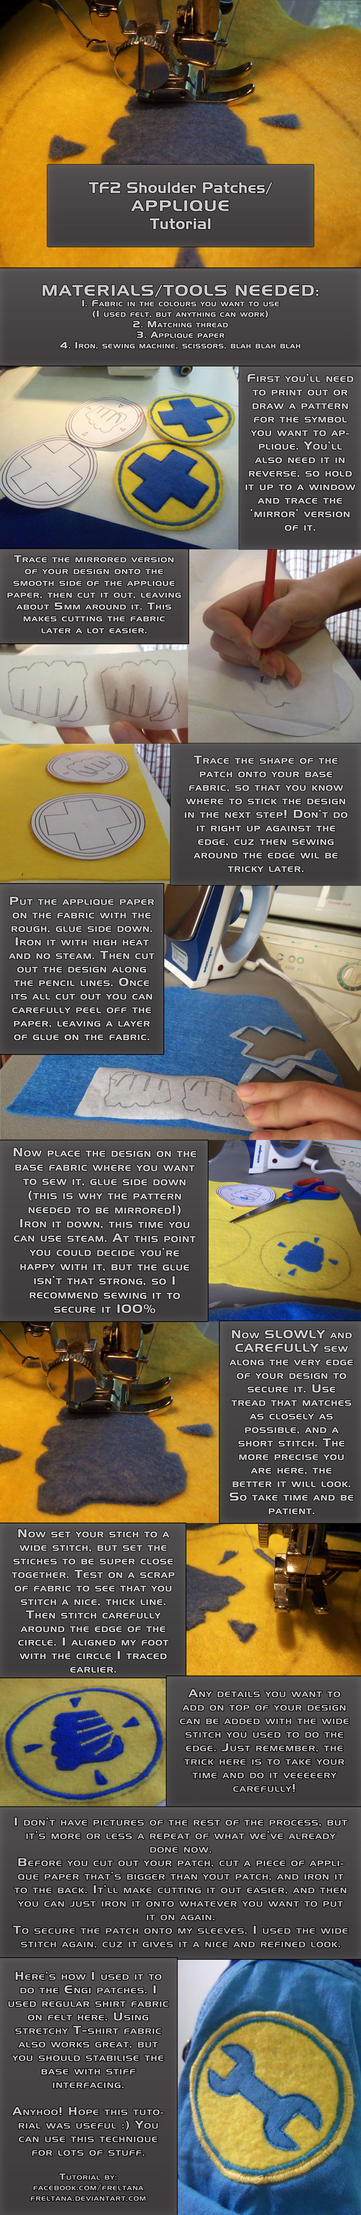 Tutorial: Applique / Team Fortress patches by freltana